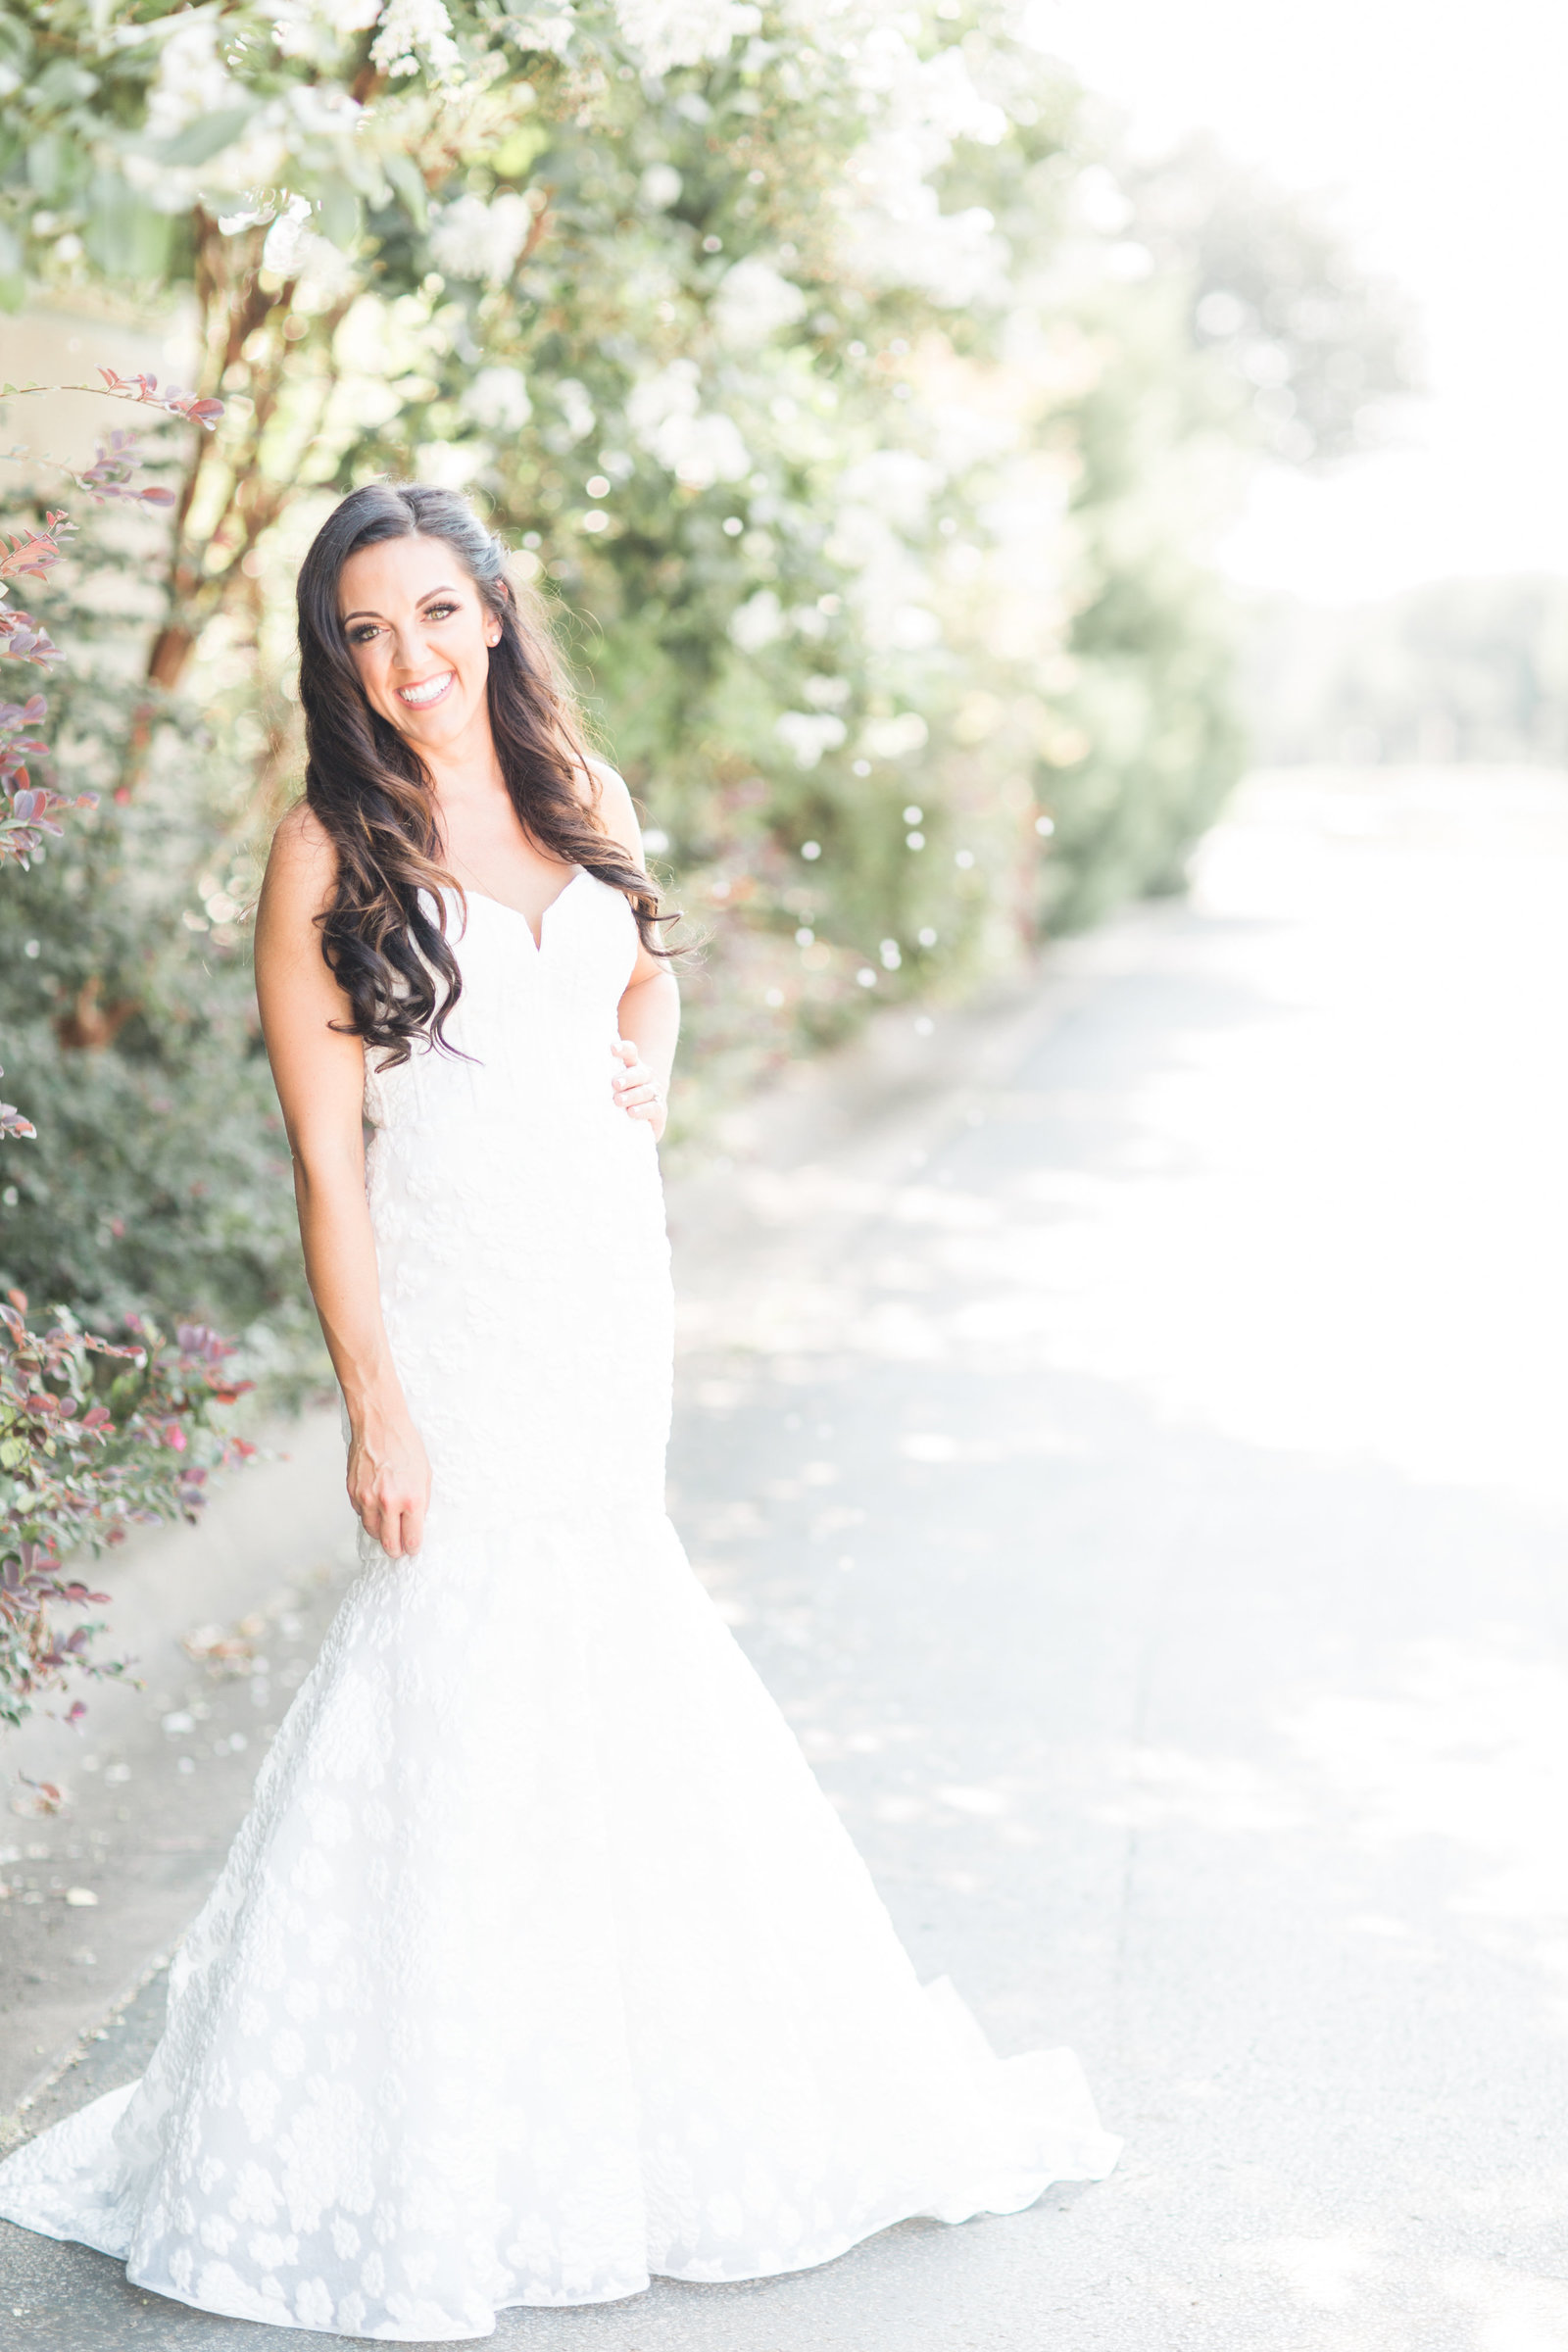 ashley stunning in her bridal gown